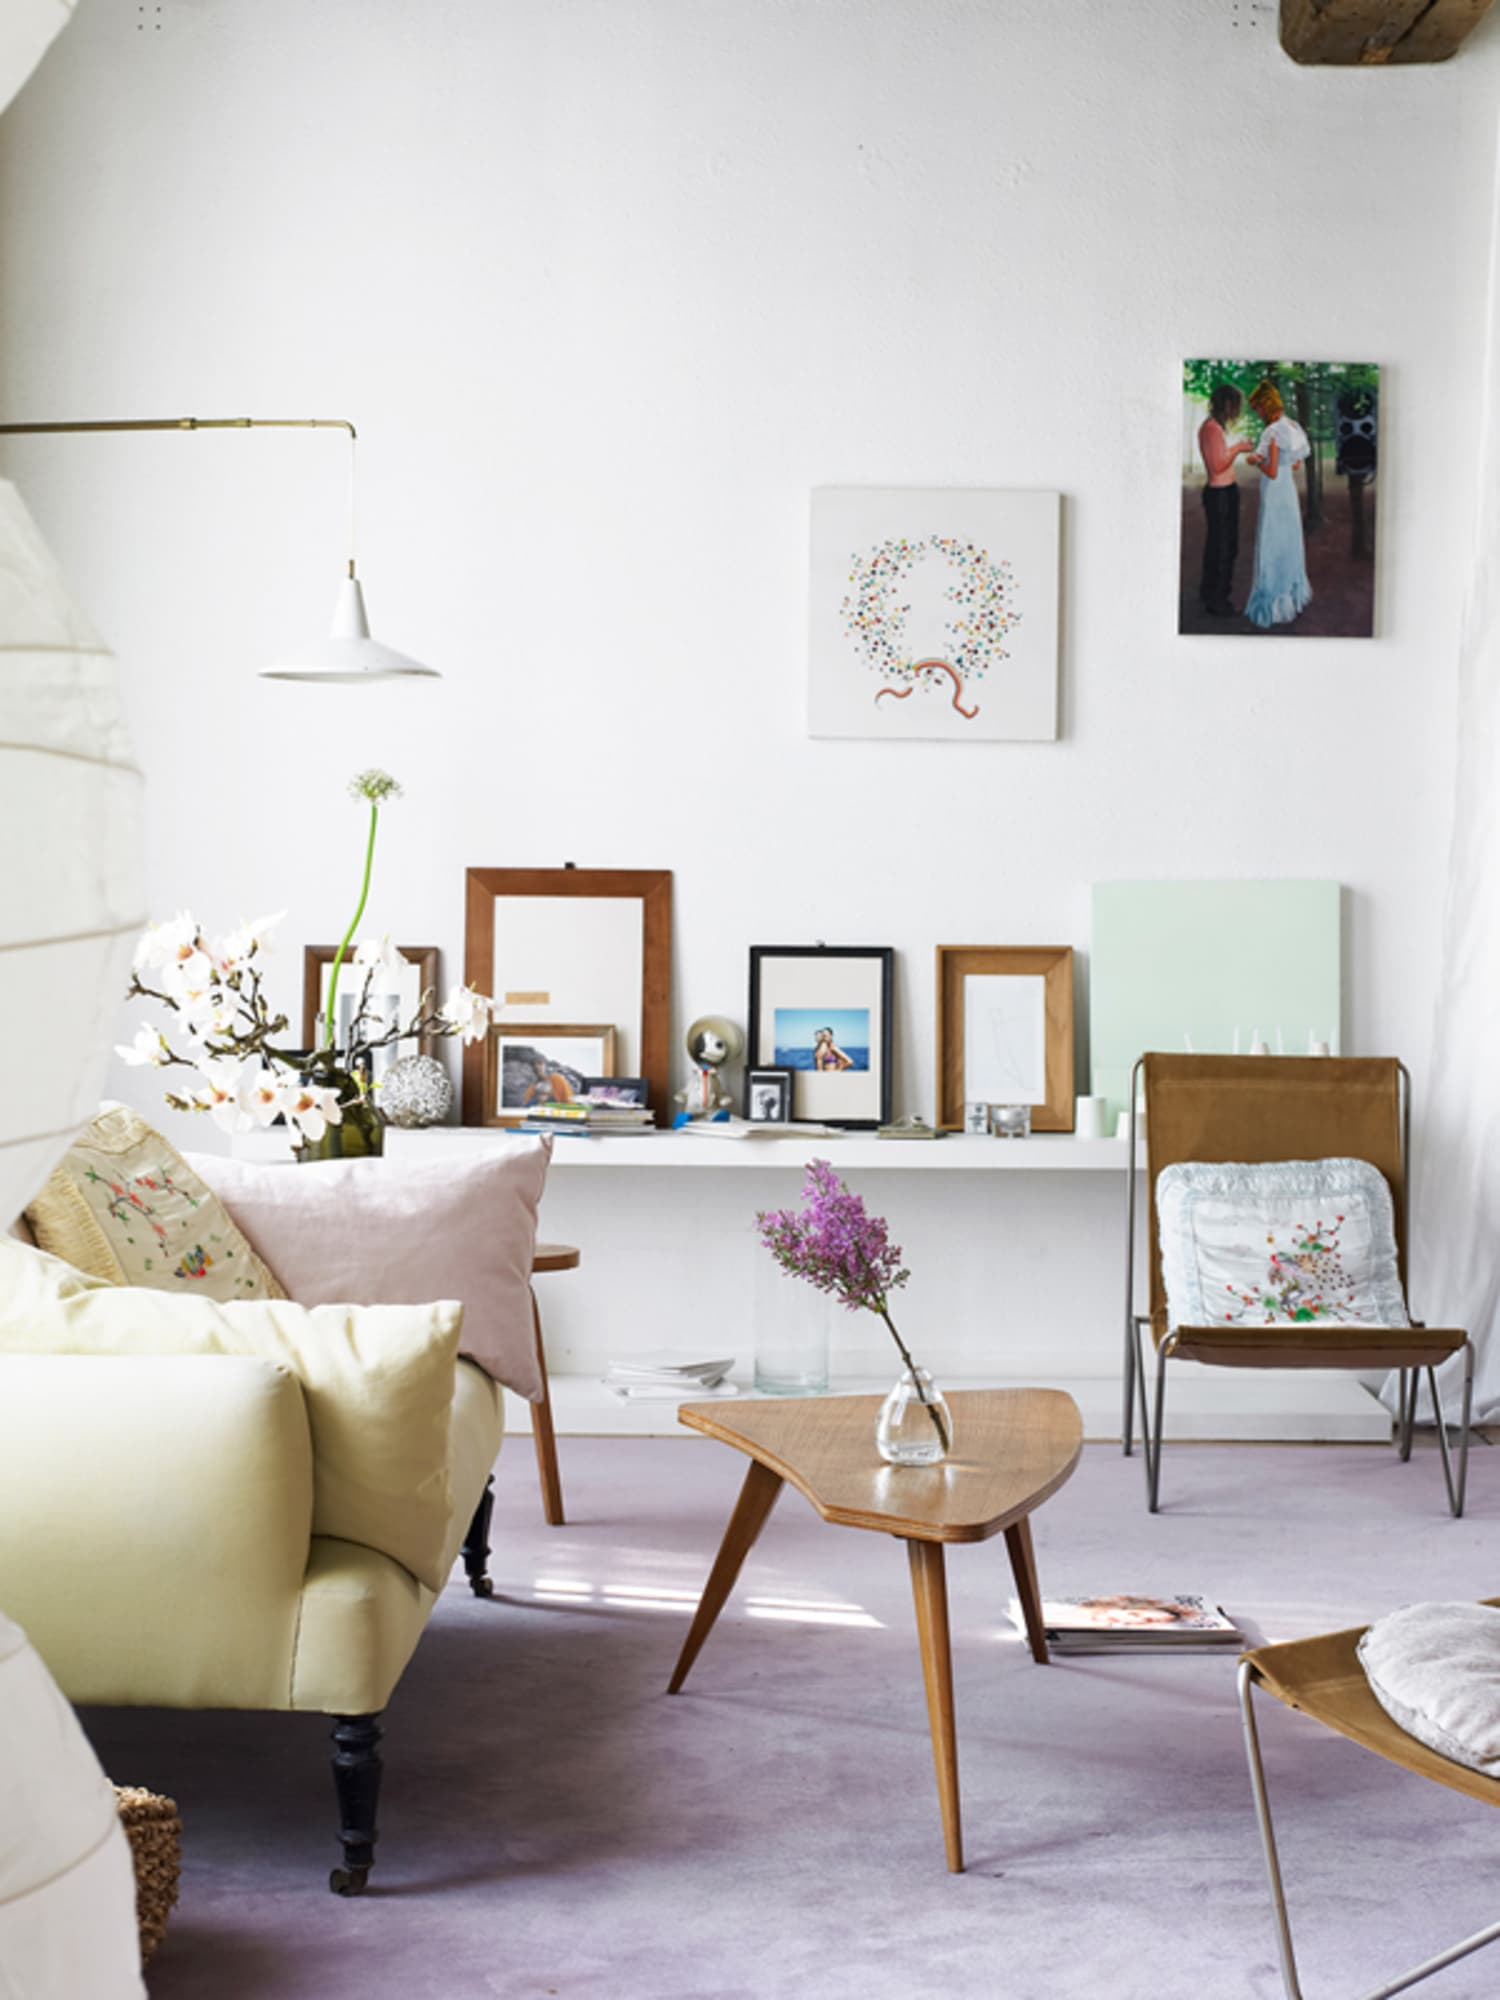 Decorating Tricks to Steal from Stylish Paris Interiors